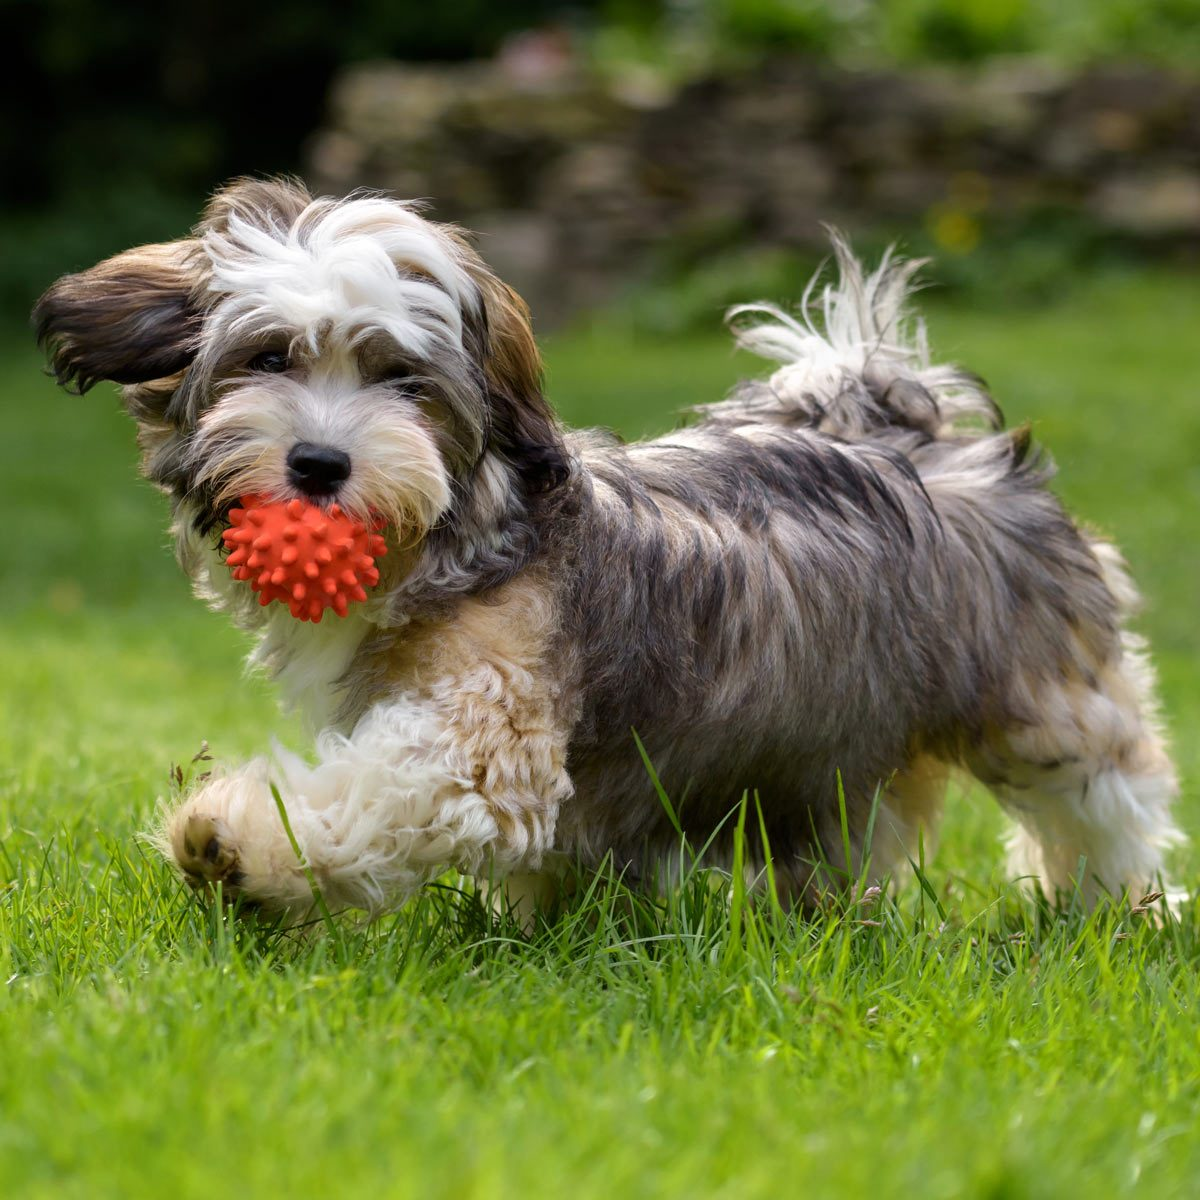 Playful-havanese-puppy-dog-walking-with-a-red-ball-in-his-mouth-in-the-grass